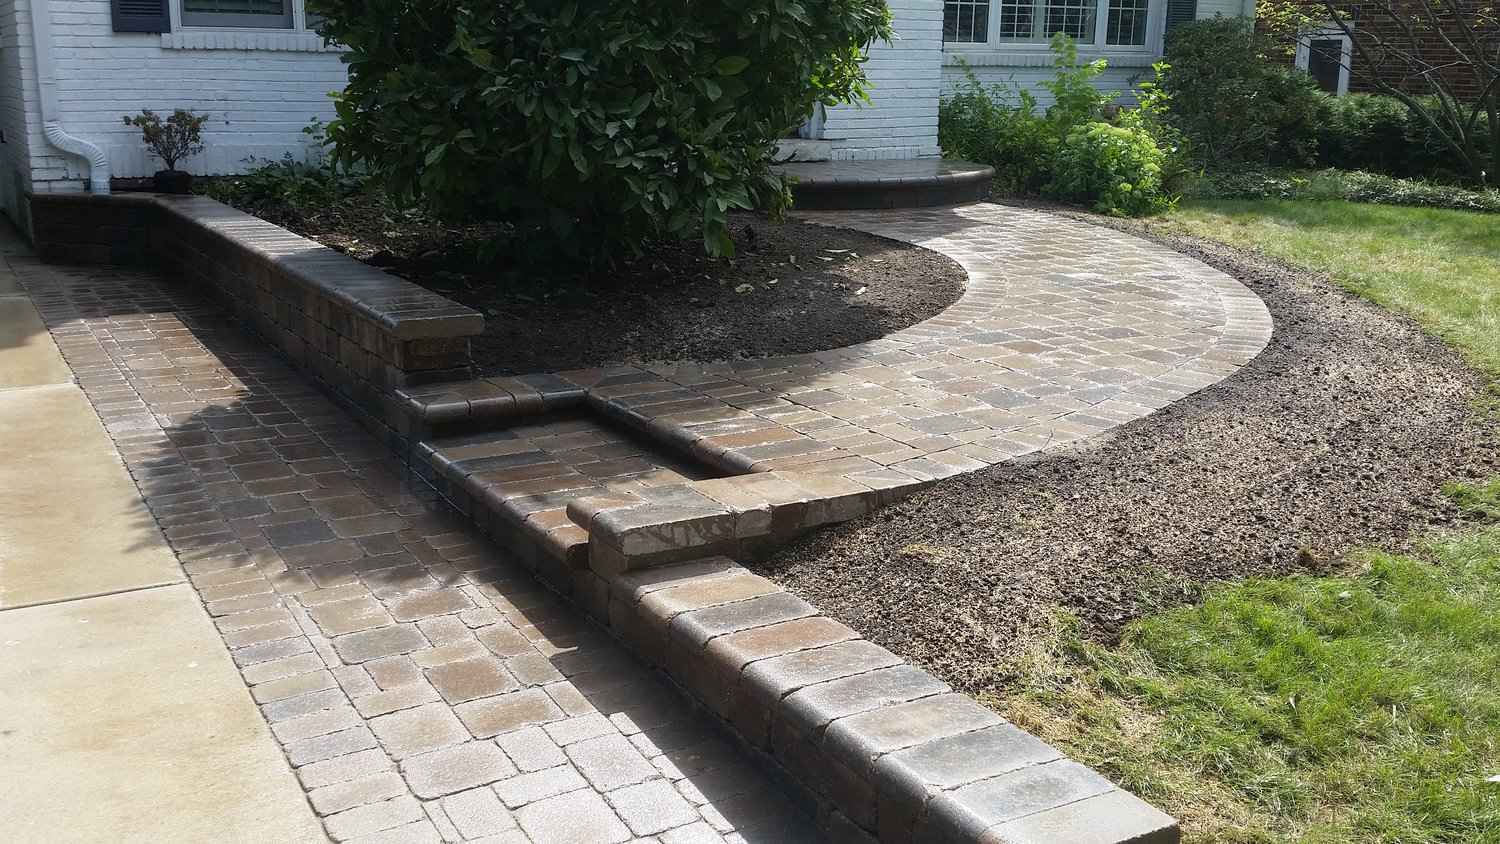 Portland-Corpus Christi TX Landscape Designs & Outdoor Living Areas-We offer Landscape Design, Outdoor Patios & Pergolas, Outdoor Living Spaces, Stonescapes, Residential & Commercial Landscaping, Irrigation Installation & Repairs, Drainage Systems, Landscape Lighting, Outdoor Living Spaces, Tree Service, Lawn Service, and more.